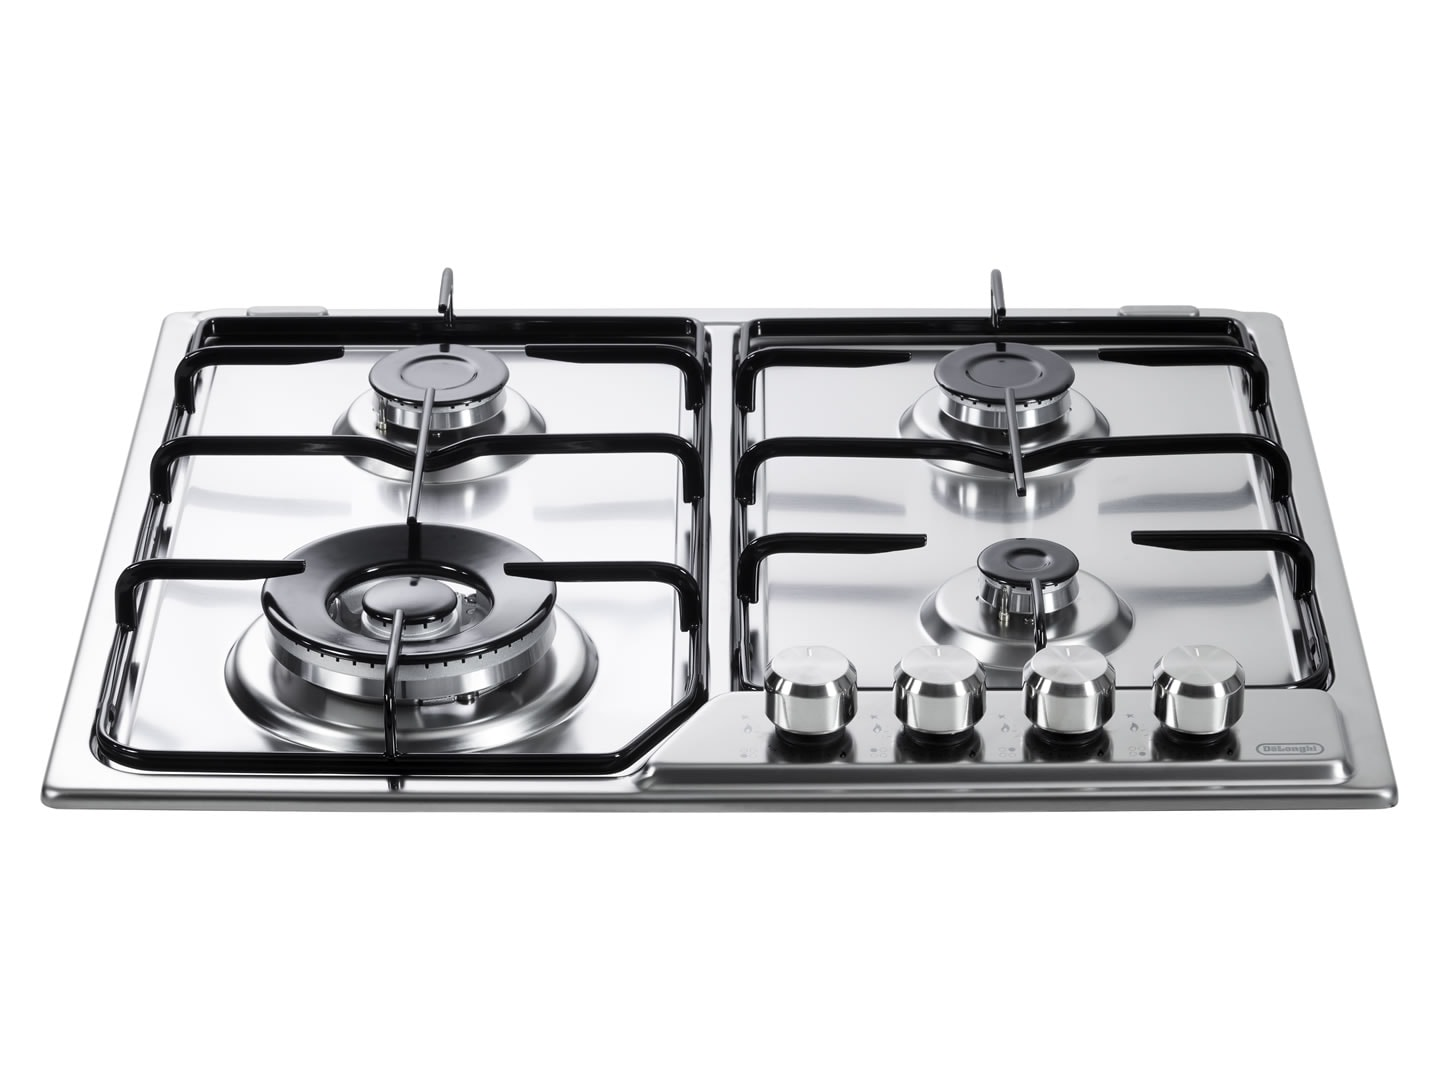 4 Burner 60cm Gas Cooktop - DEGH60STF